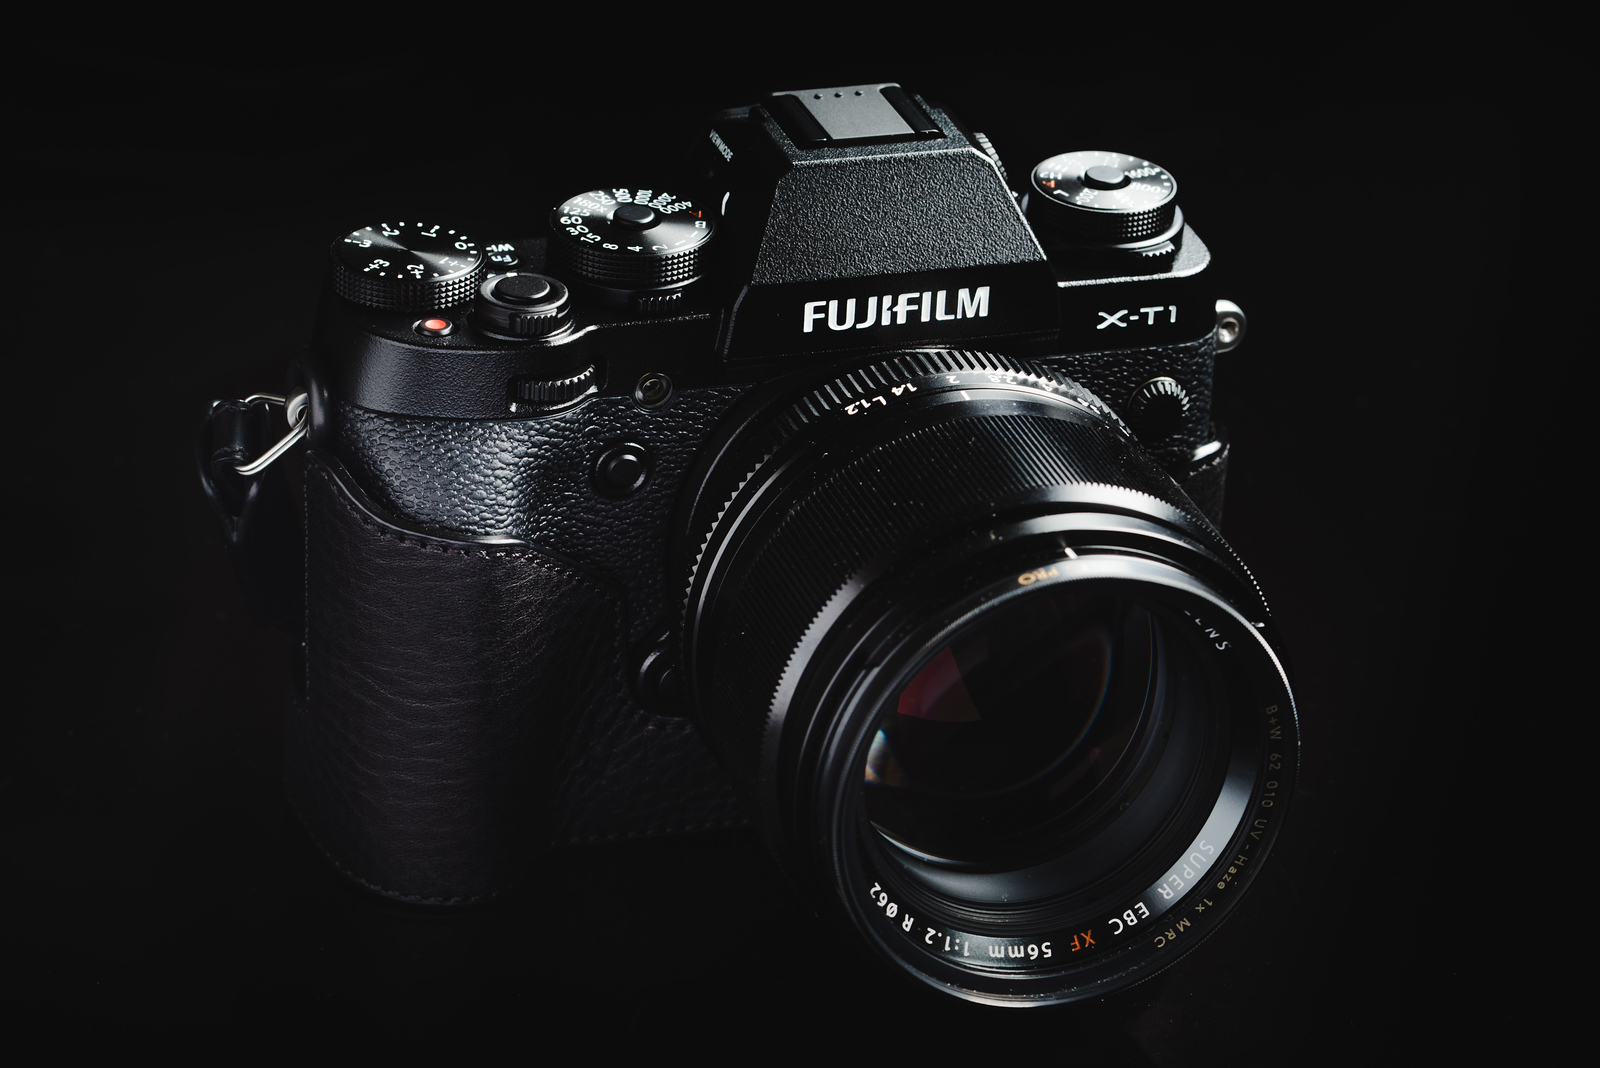 Best Accessories and Gear Fuji XT1